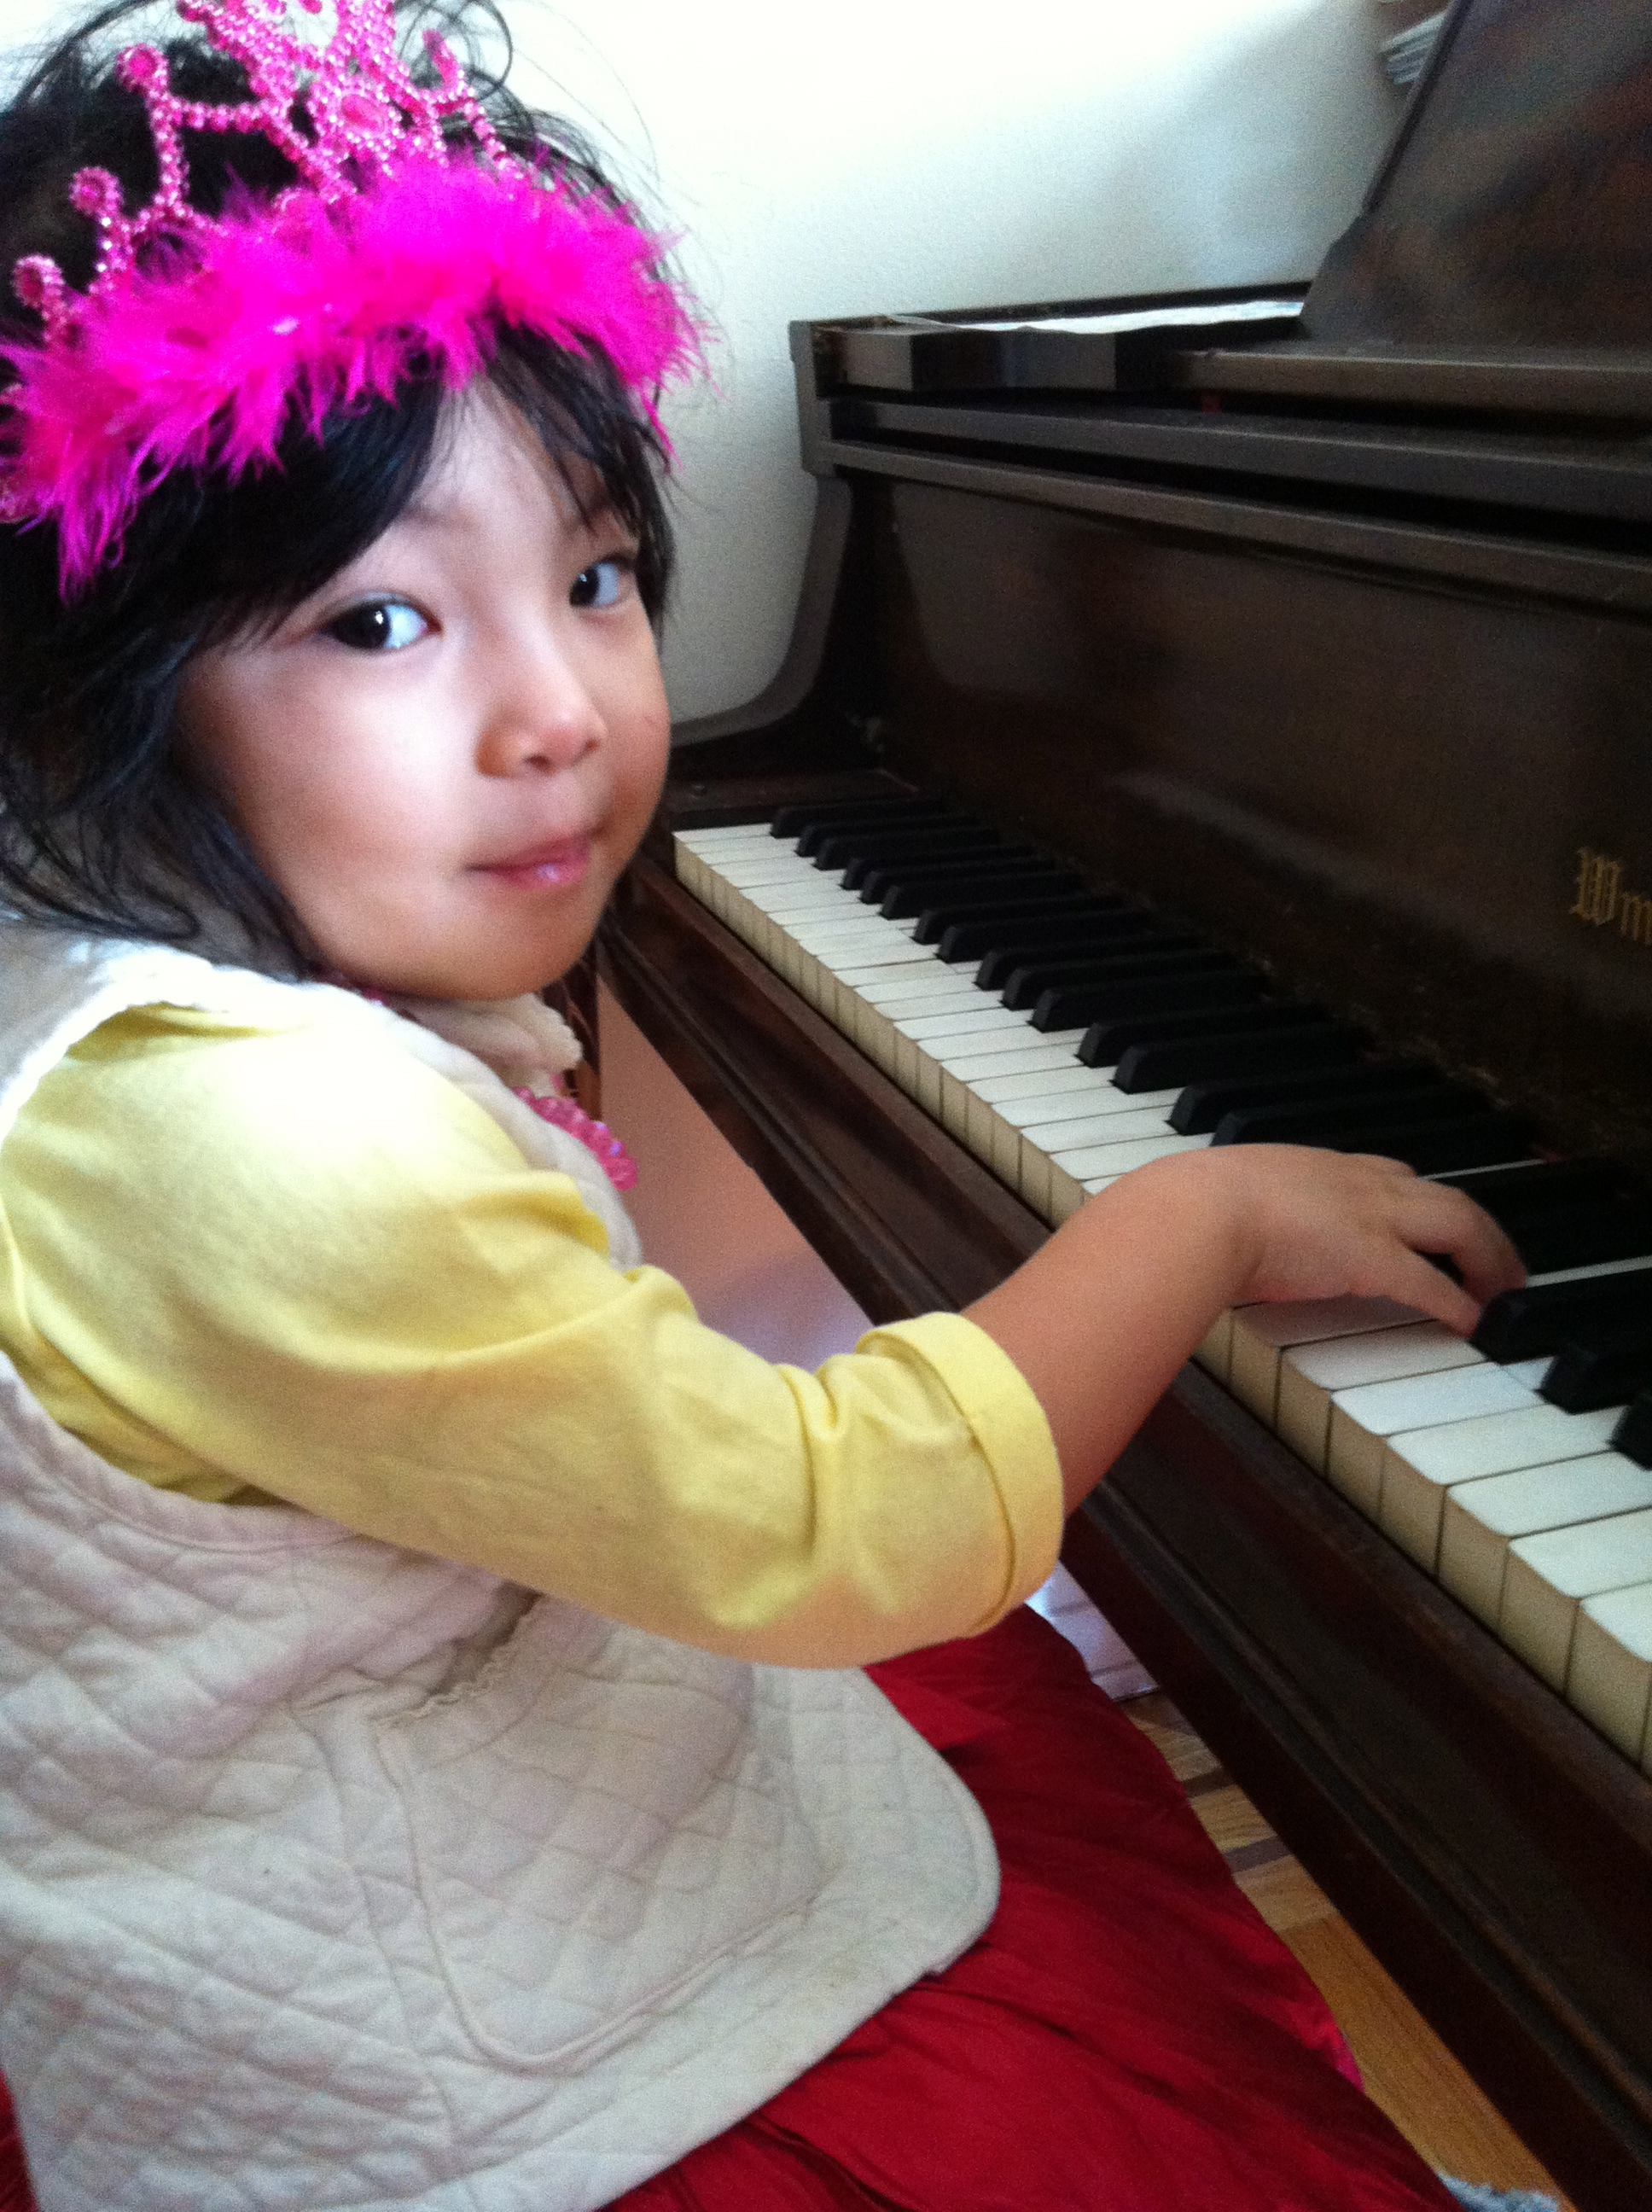 Our youngest student, 3year old and having fun playing piano!